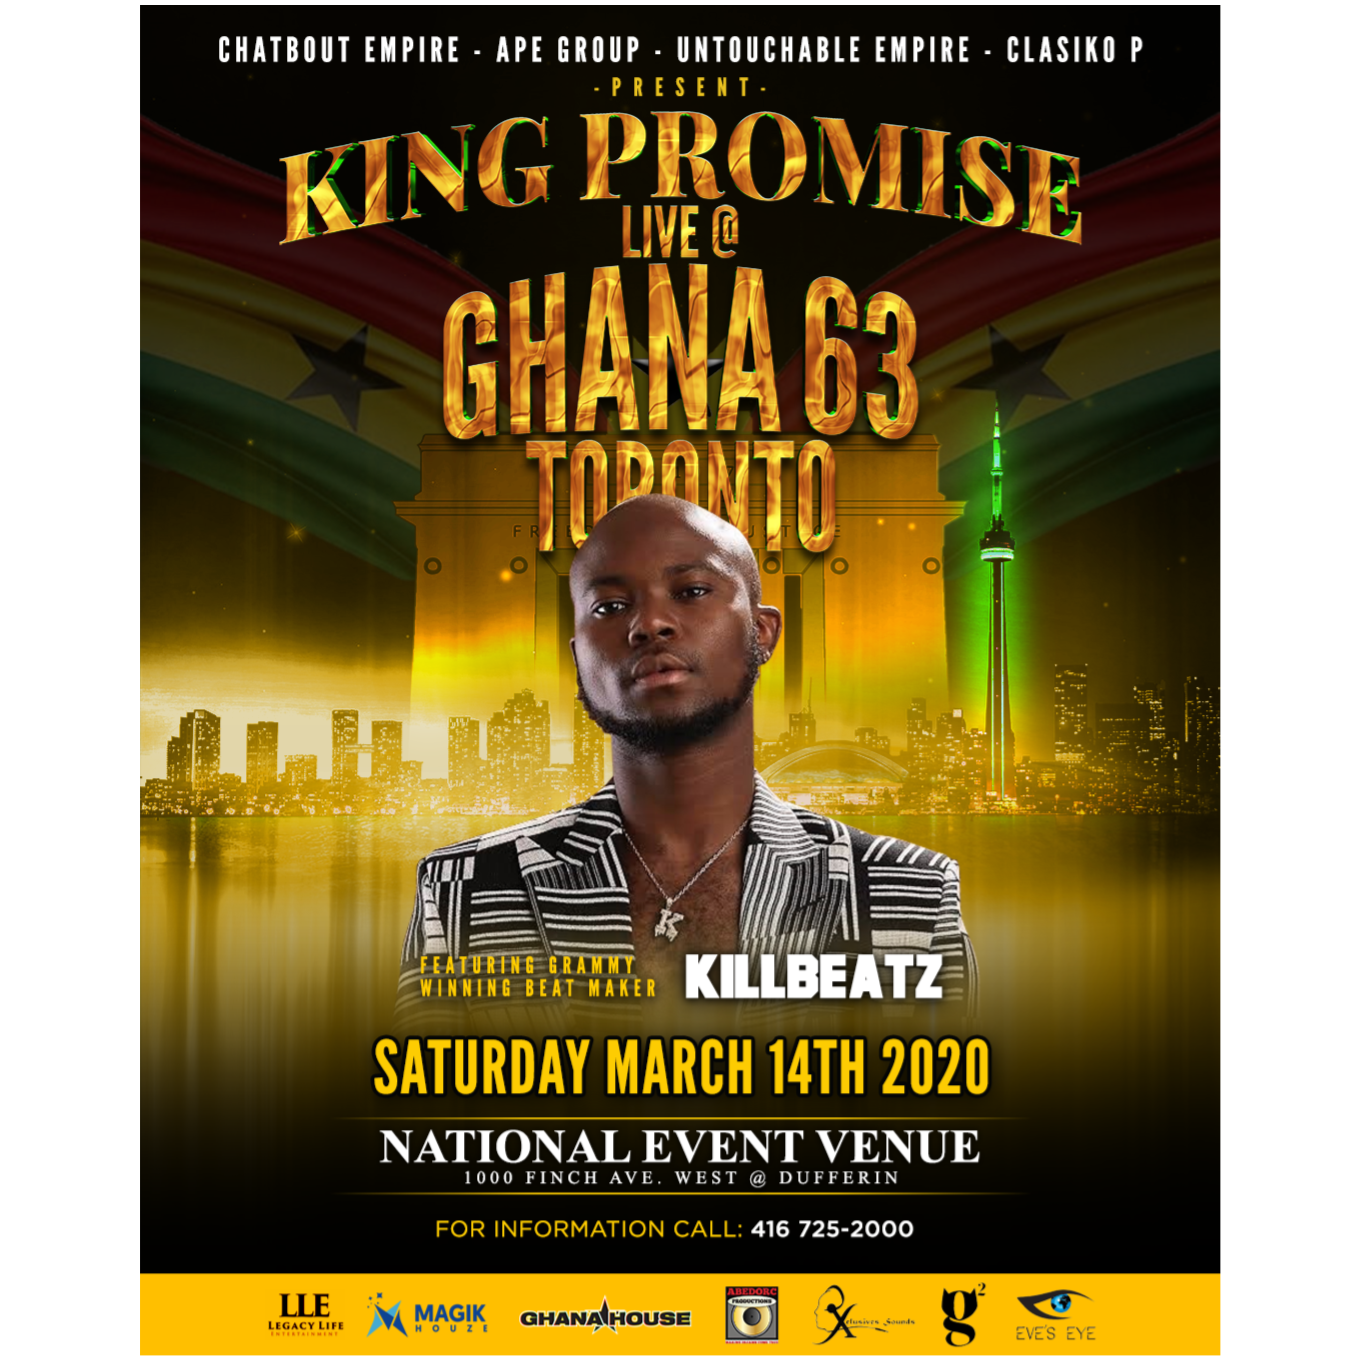 GHANA @ 63 TORONTO AS PROMISED CONCERT